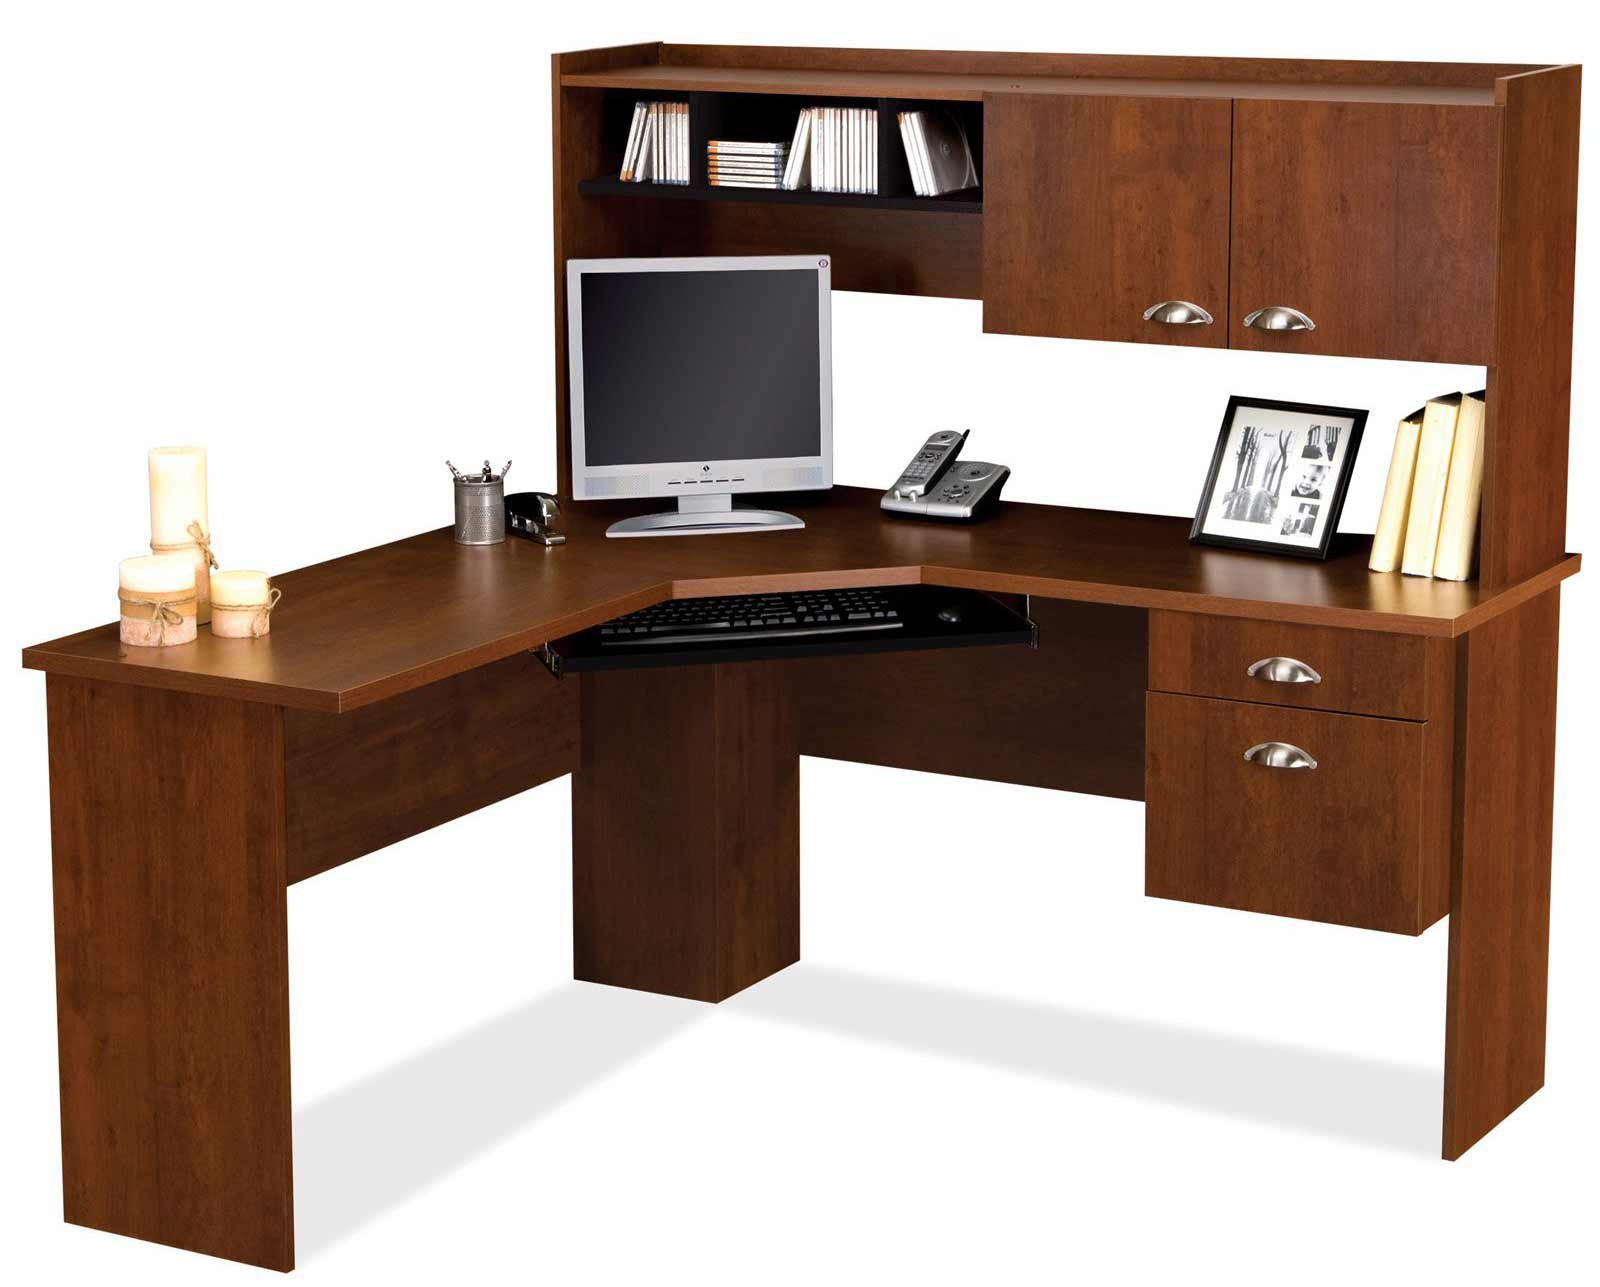 Bestar Delta Tuscany Brown L-Shaped Computer Desk